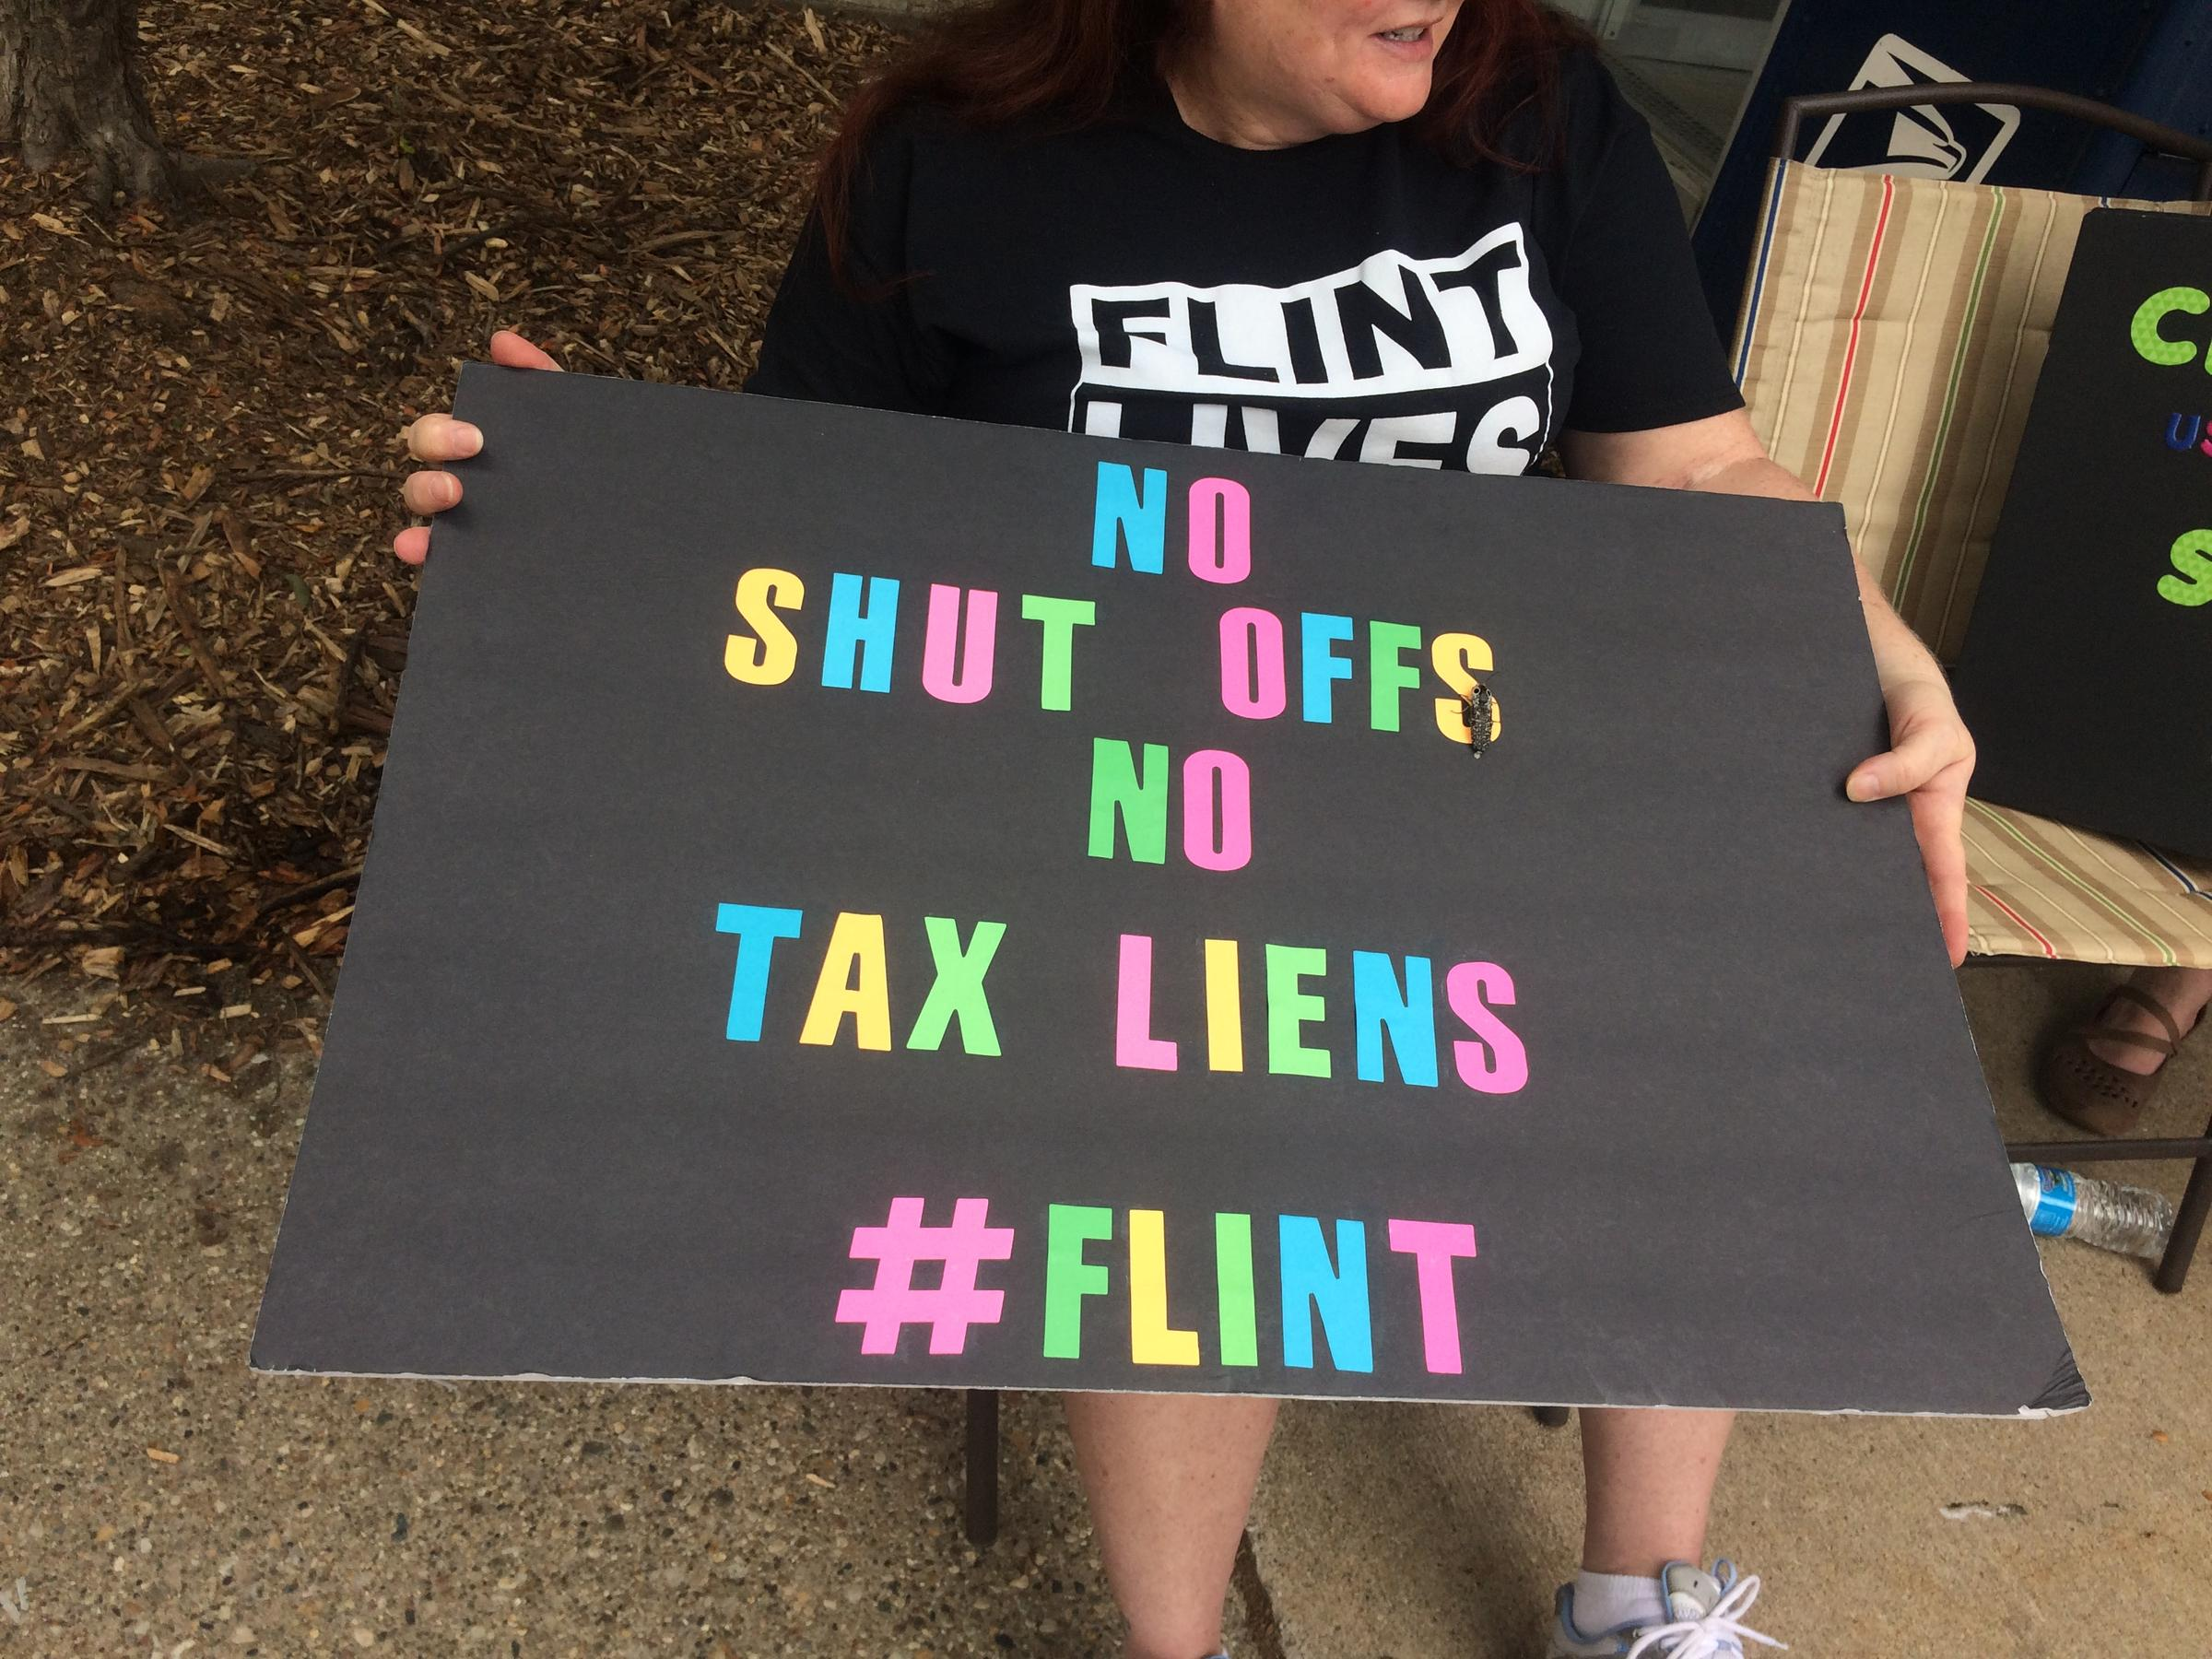 More charges expected in Flint water crisis probe